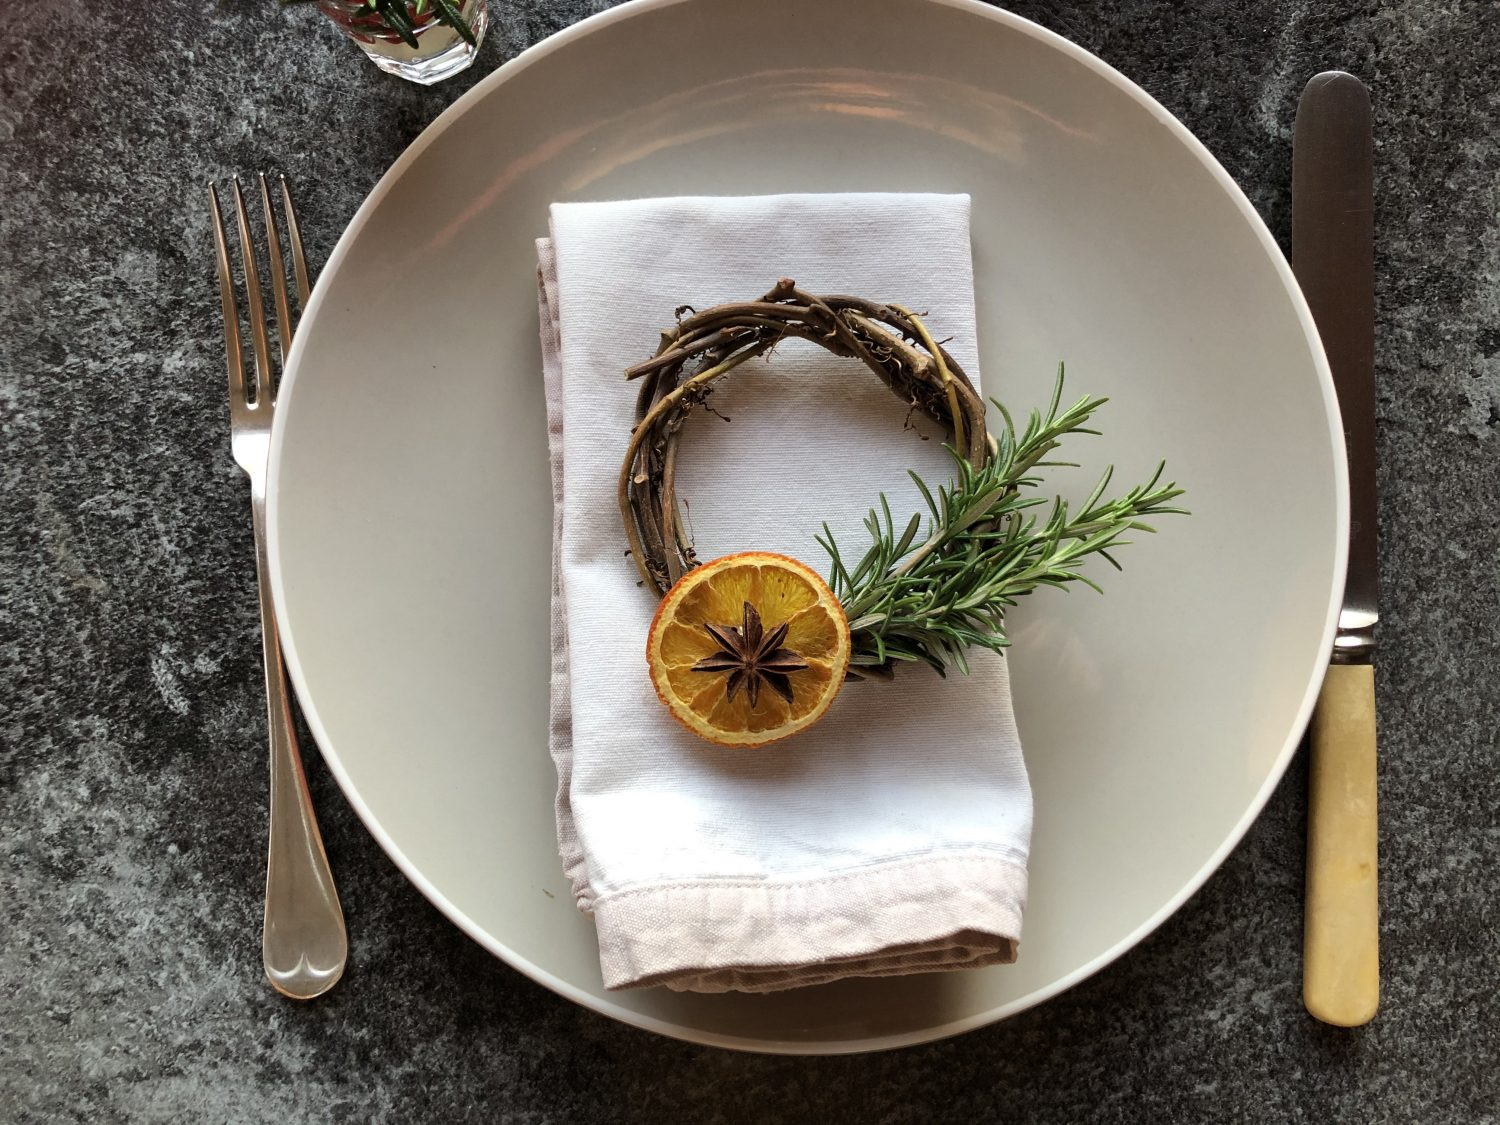 Rosemary place setting